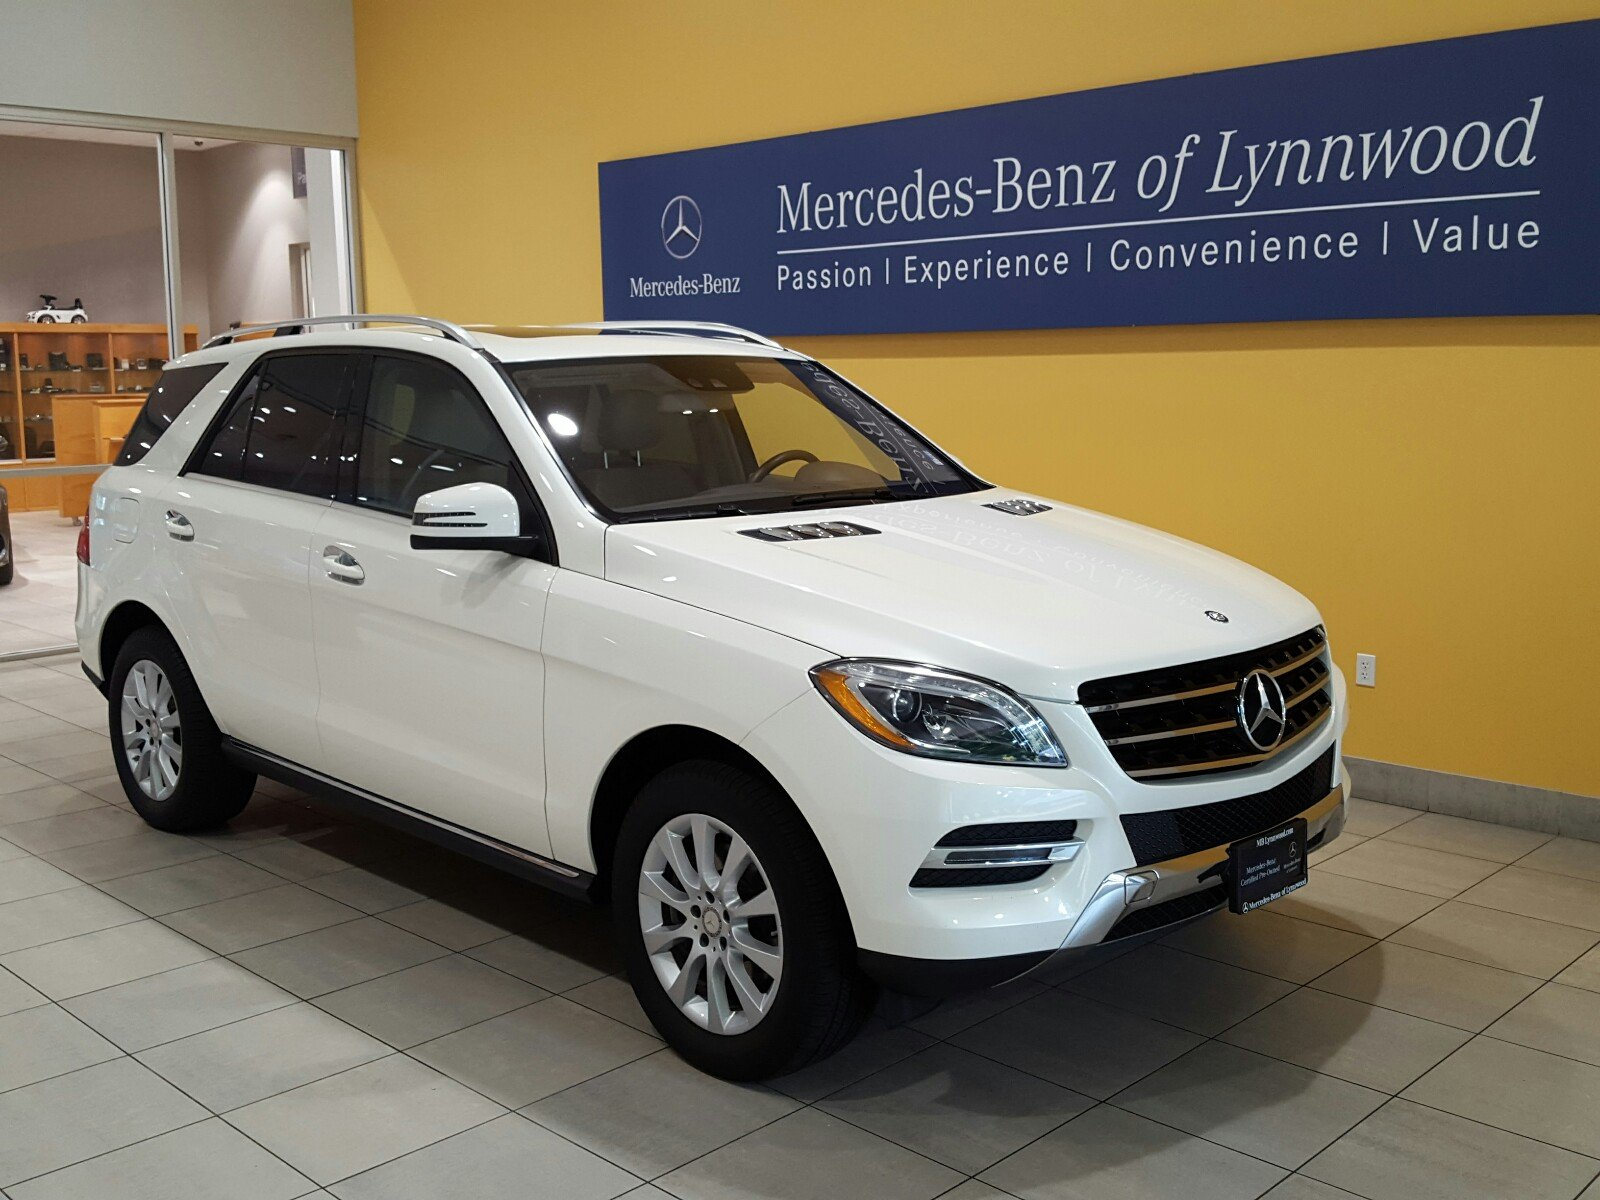 Certified pre owned 2015 mercedes benz m class ml 250 for Certified pre owned mercedes benz